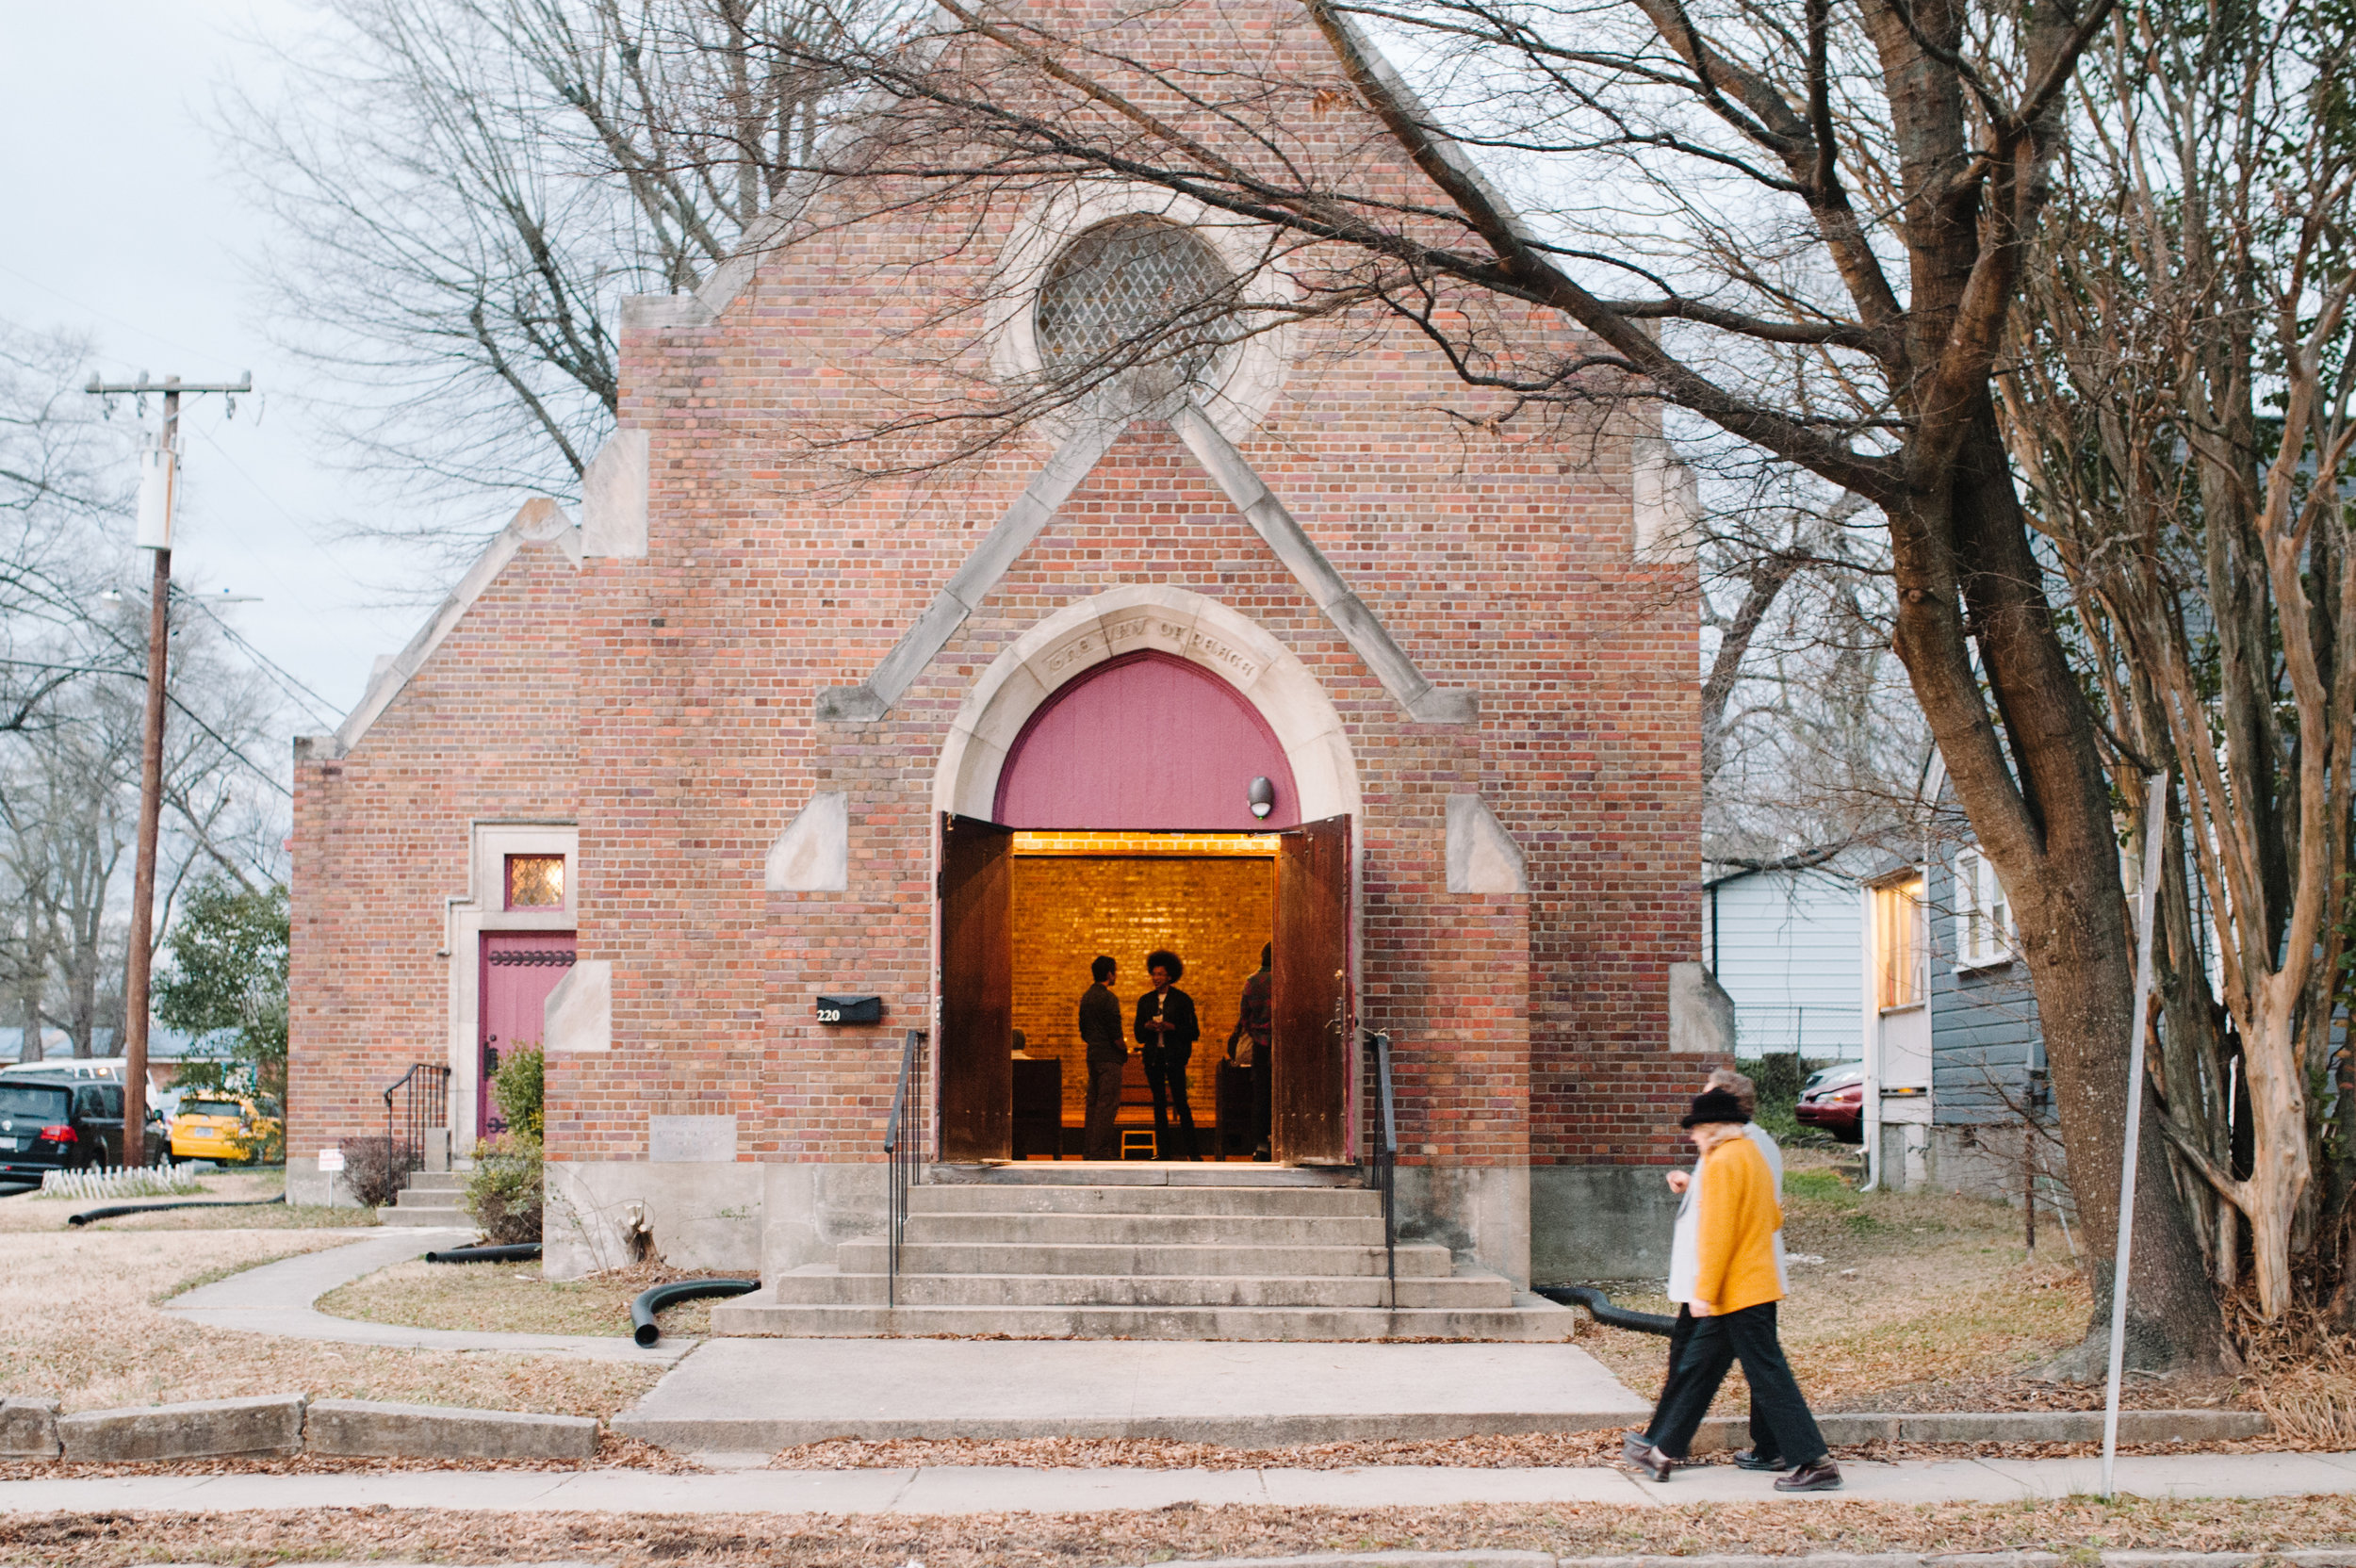 ENTER: nORTHSTAR CHURCH OF THE ARTS - Located in the heart of Downtown Durham,NorthStar is a sacred space for healing, creative expression and spiritual connectivity.NORTHSTAR hosts A MONTHLY SERIES OF art openings, performances and 3rd Sunday services that explore the intersections between creativity and spirituality.